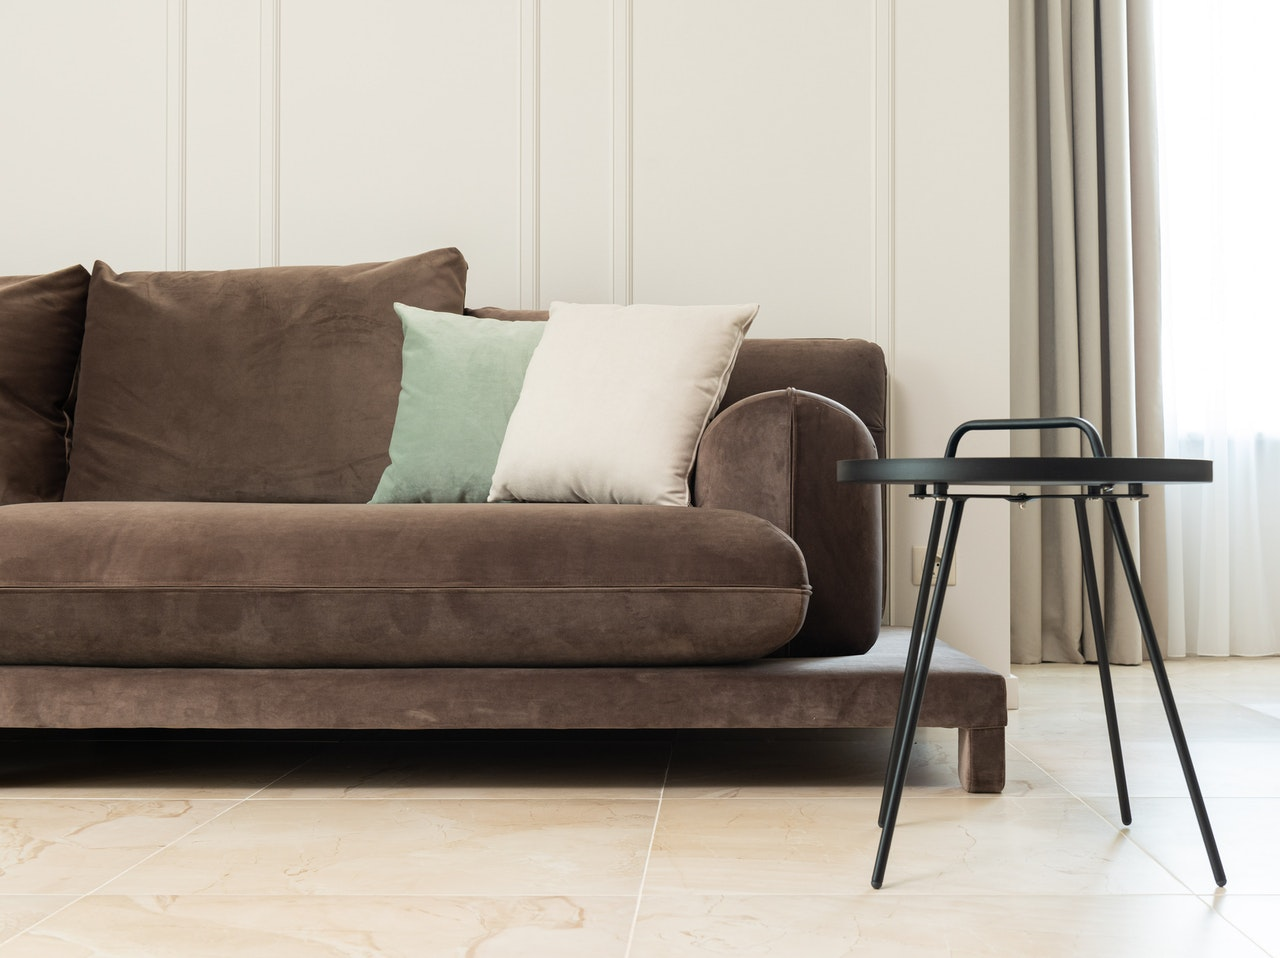 A stool next to a clean microsuede couch